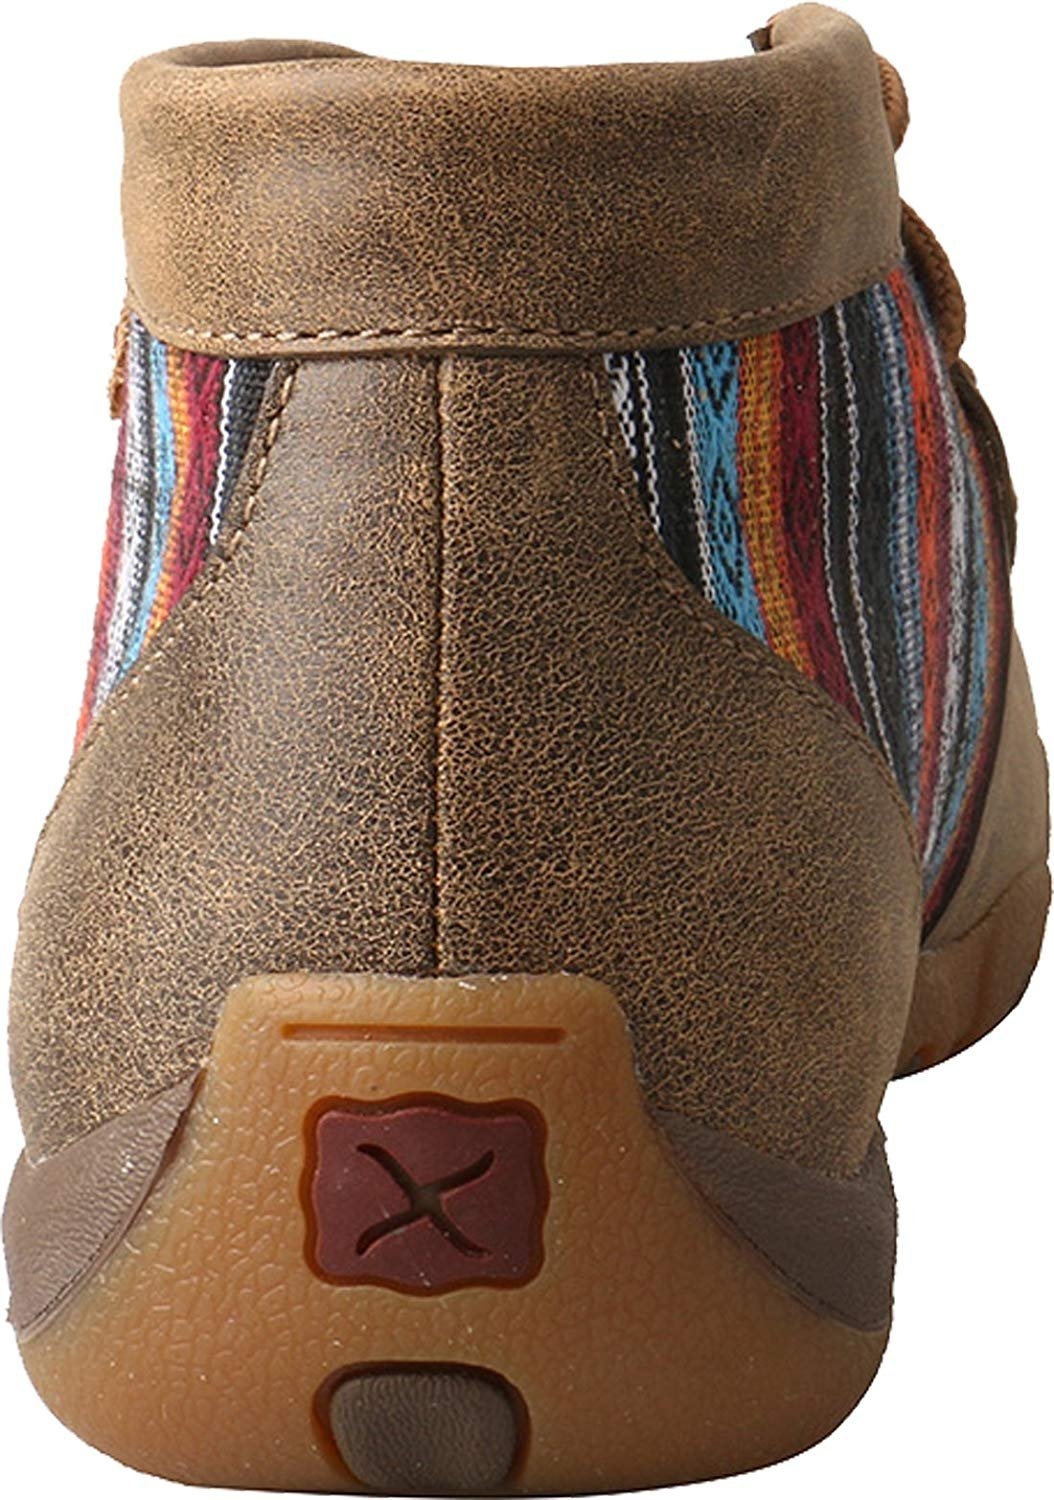 0710505d1c1 Twisted X Women s Leather Lace-up Rubber Sole Driving Moccasins Serape.  Product Details